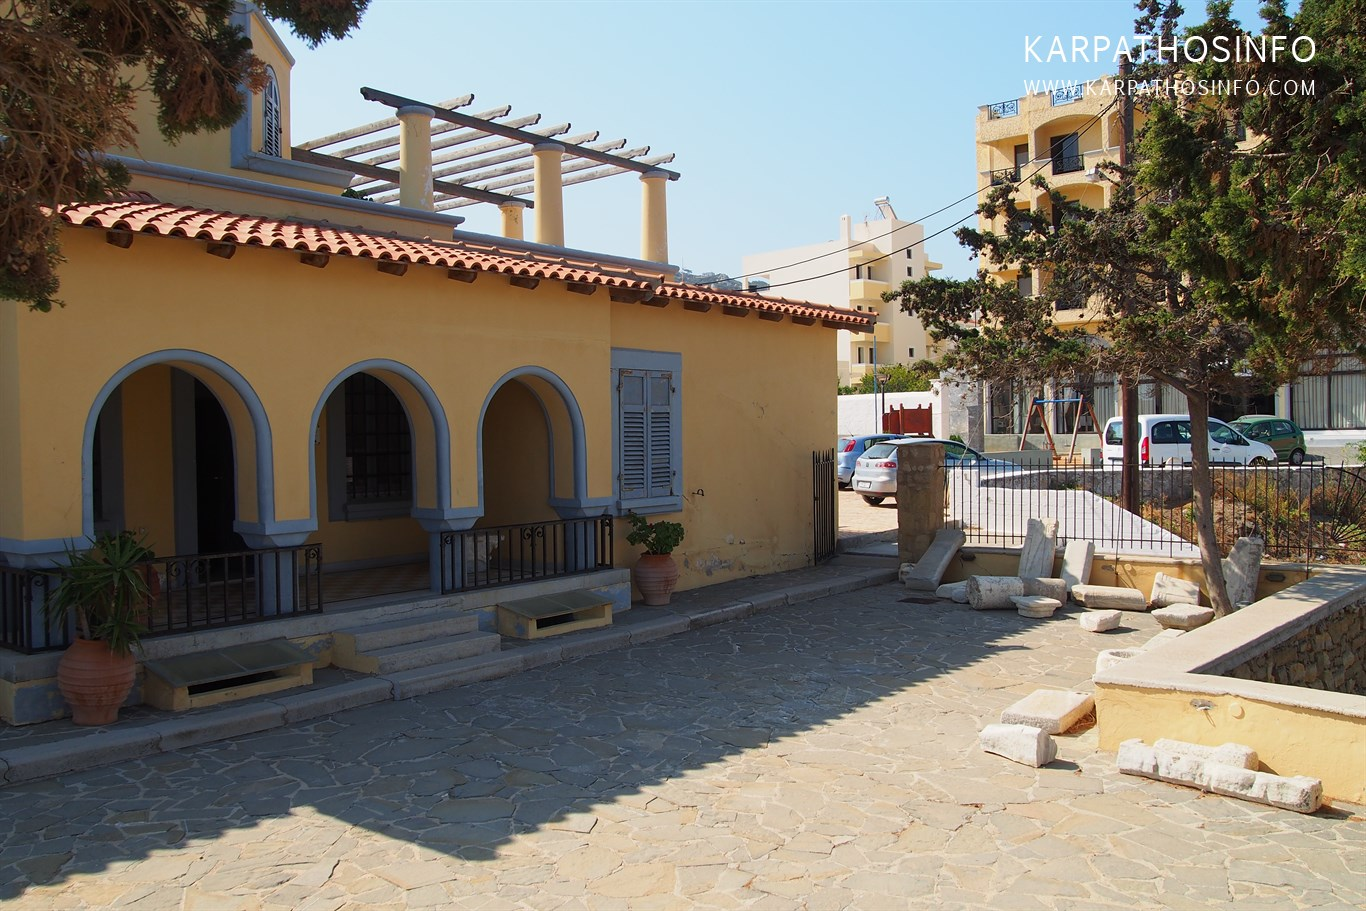 Archeological Museum of Karpathos